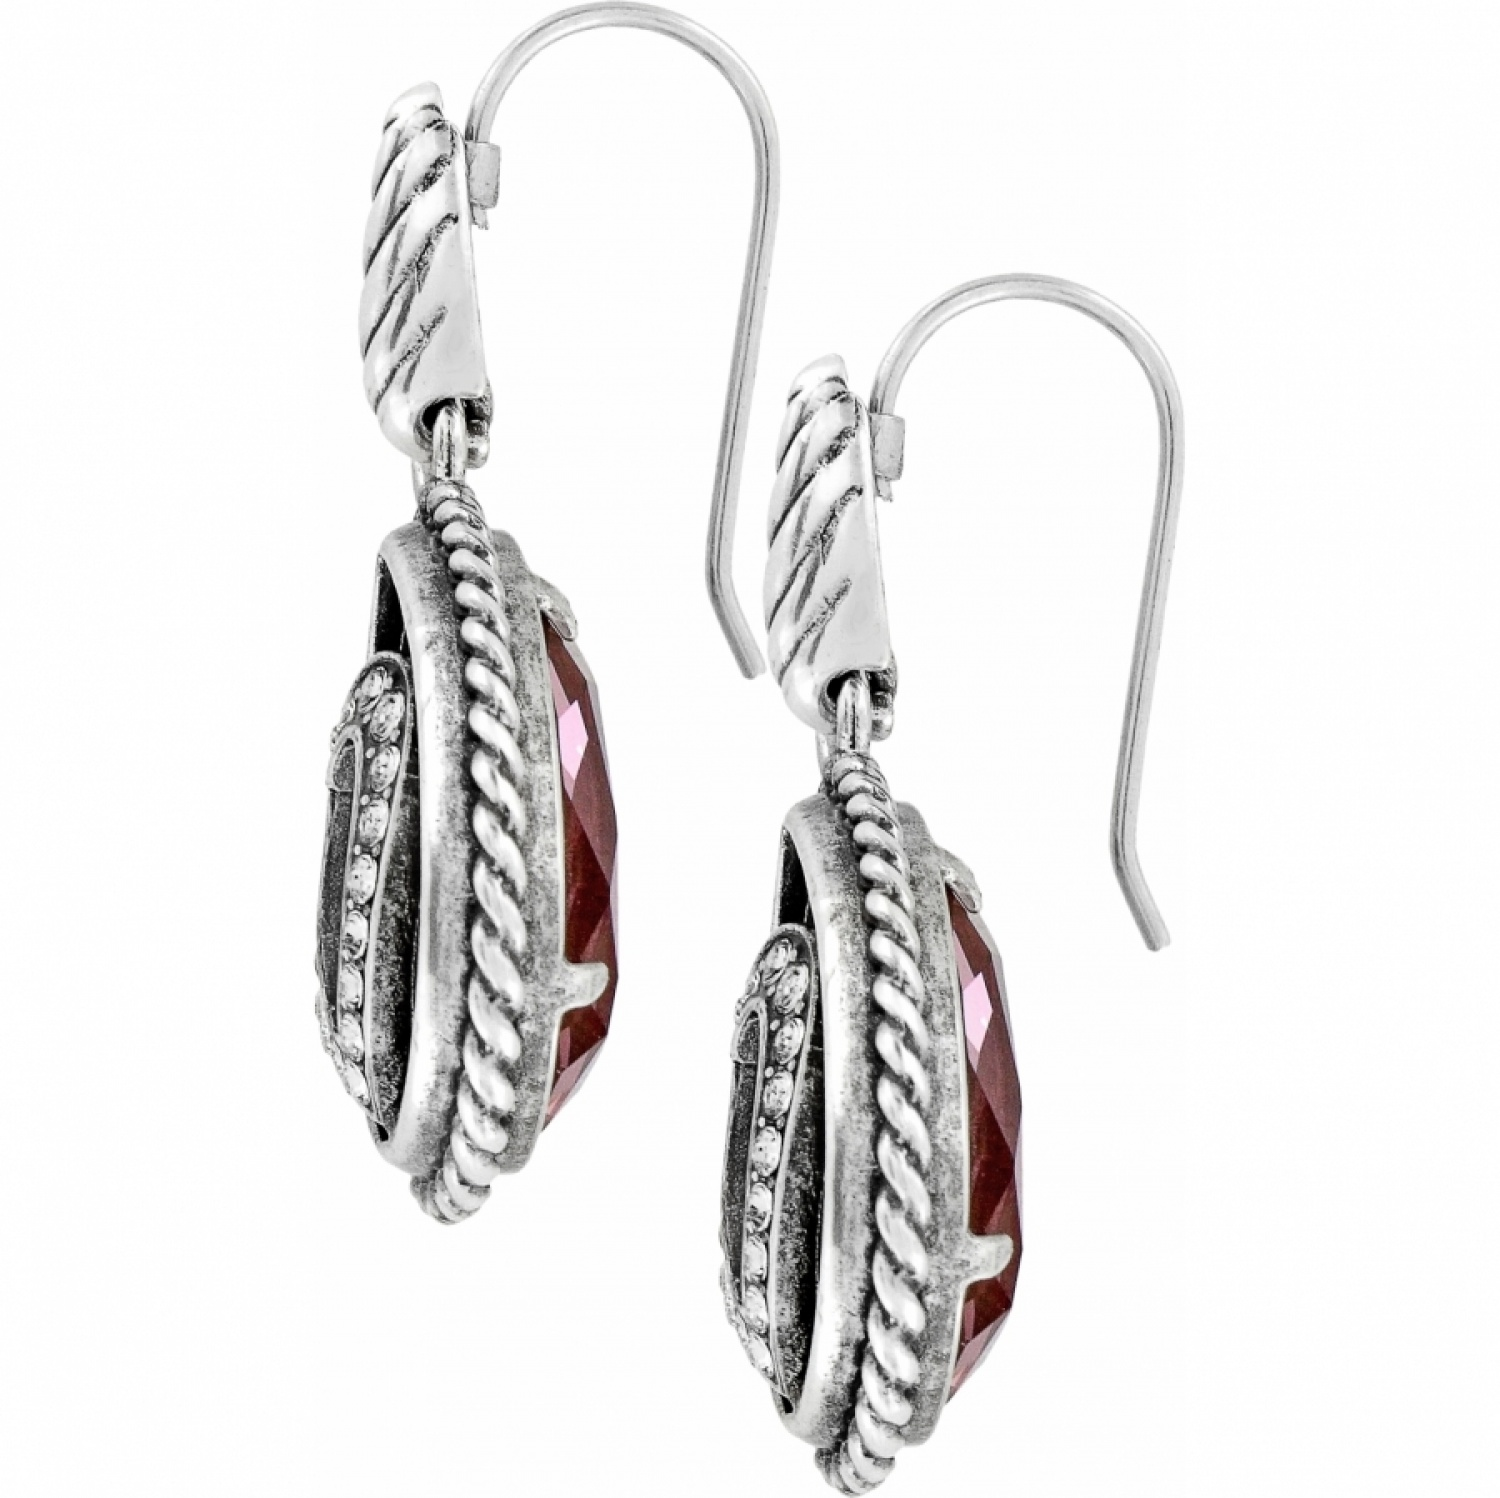 Courageous Heart French Wire Earrings In